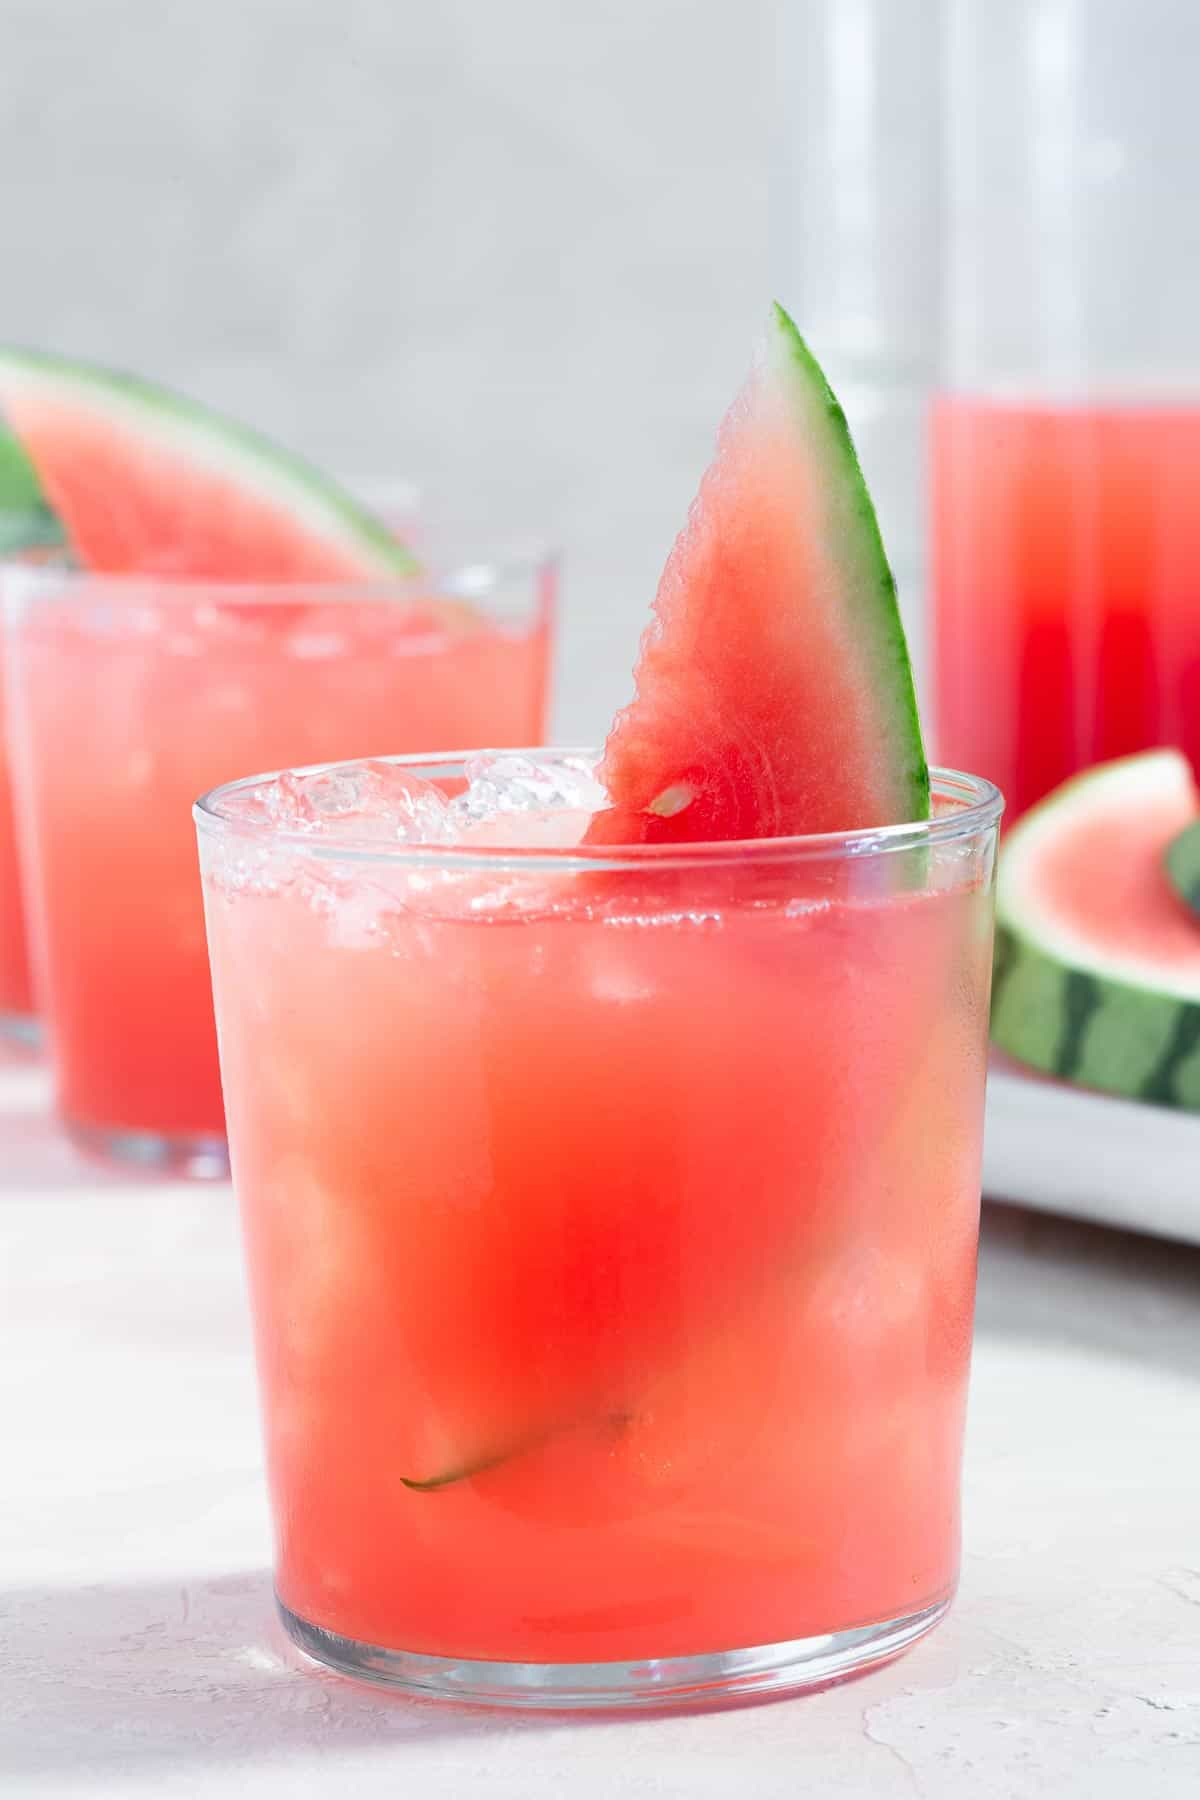 Close up of a glass with pink watermelon punch garnished with a slice of watermelon